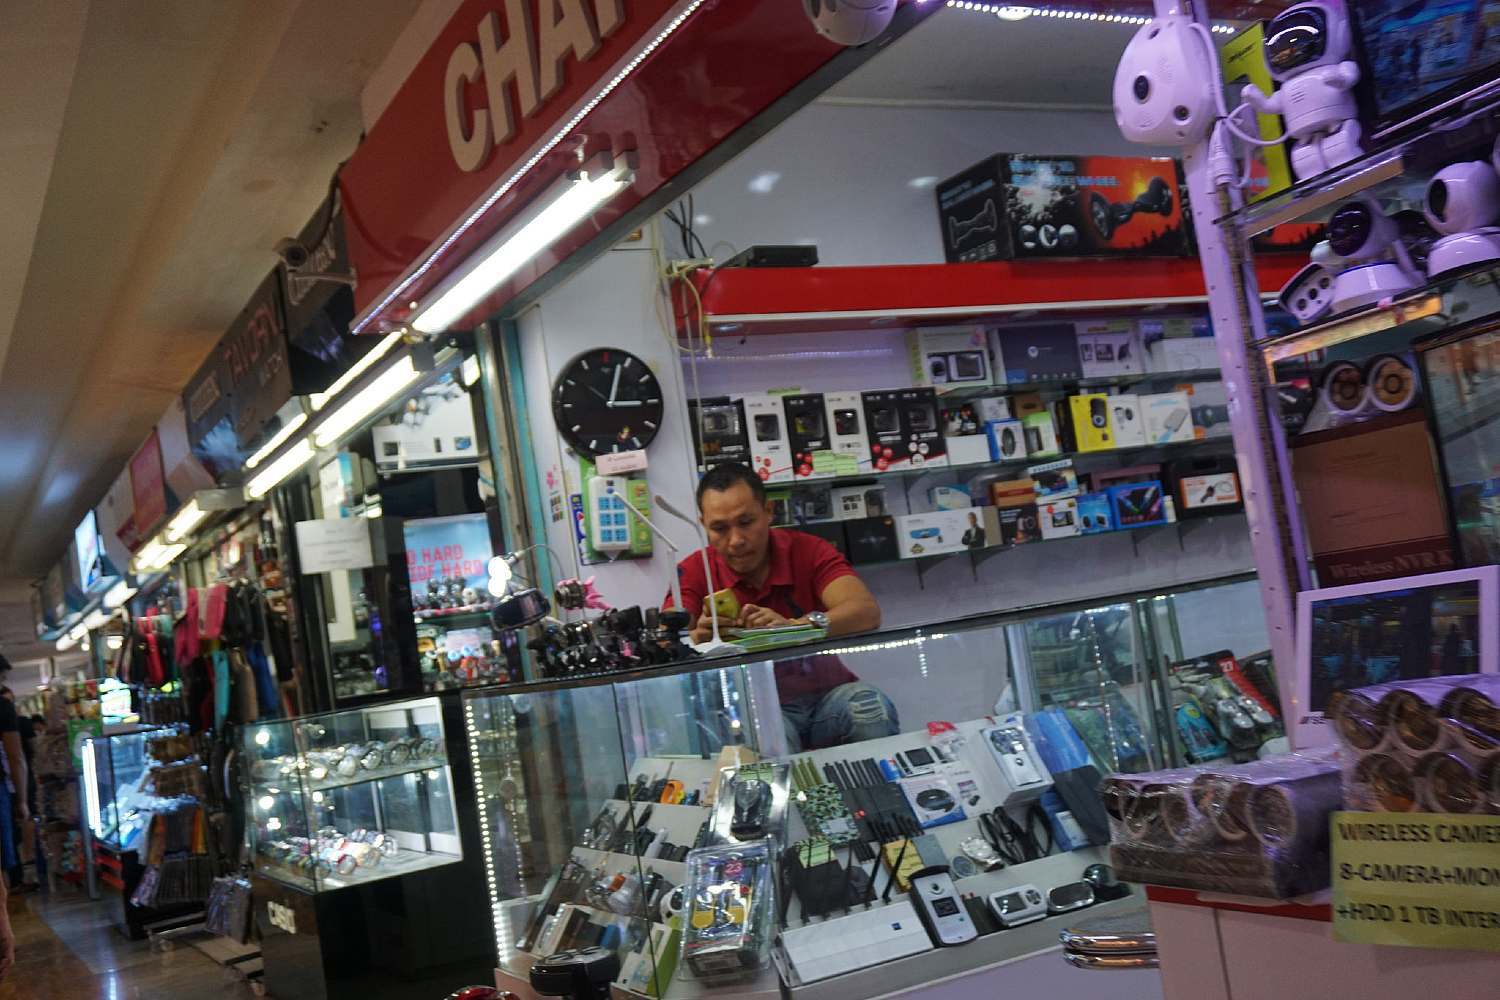 Man on his phone behind the counter at a little electronica shop in MBK Center